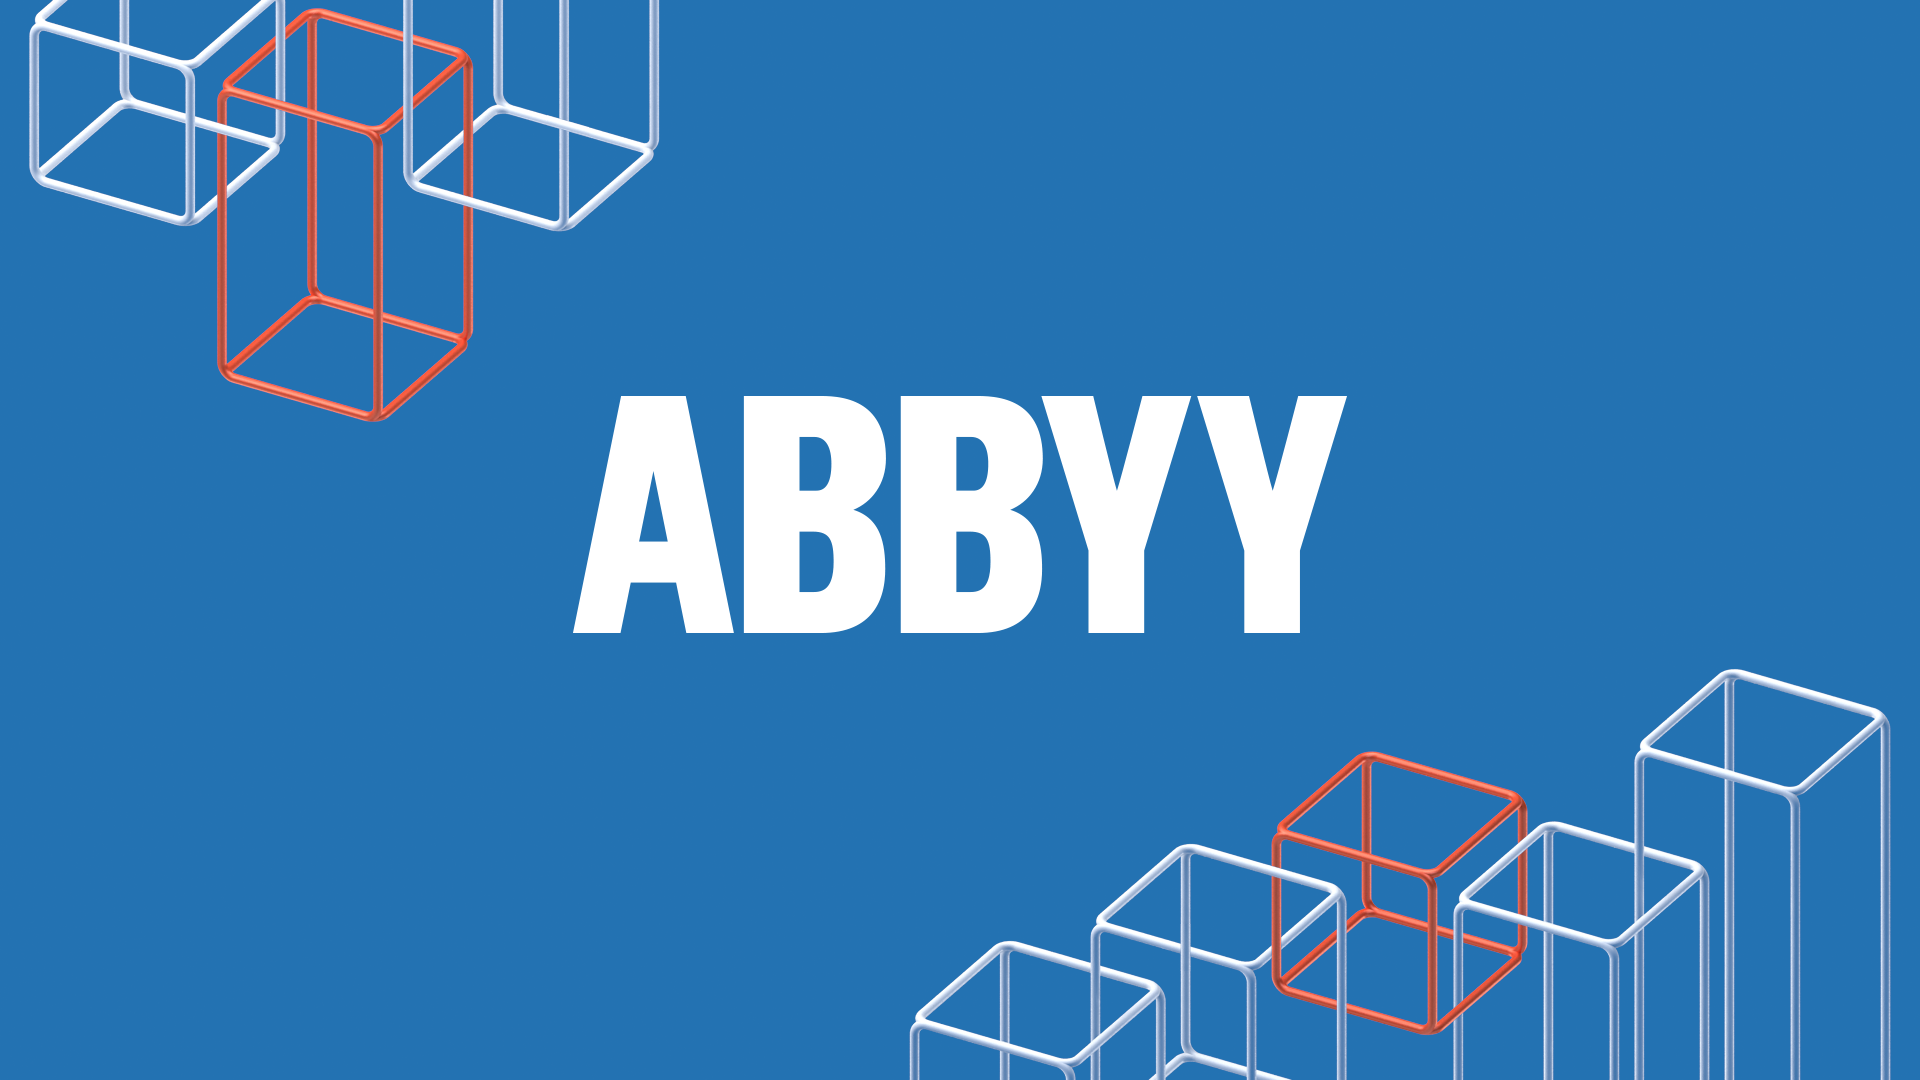 UiPath & ABBYY: Walking the Path to AI with Intelligent OCR and NLP